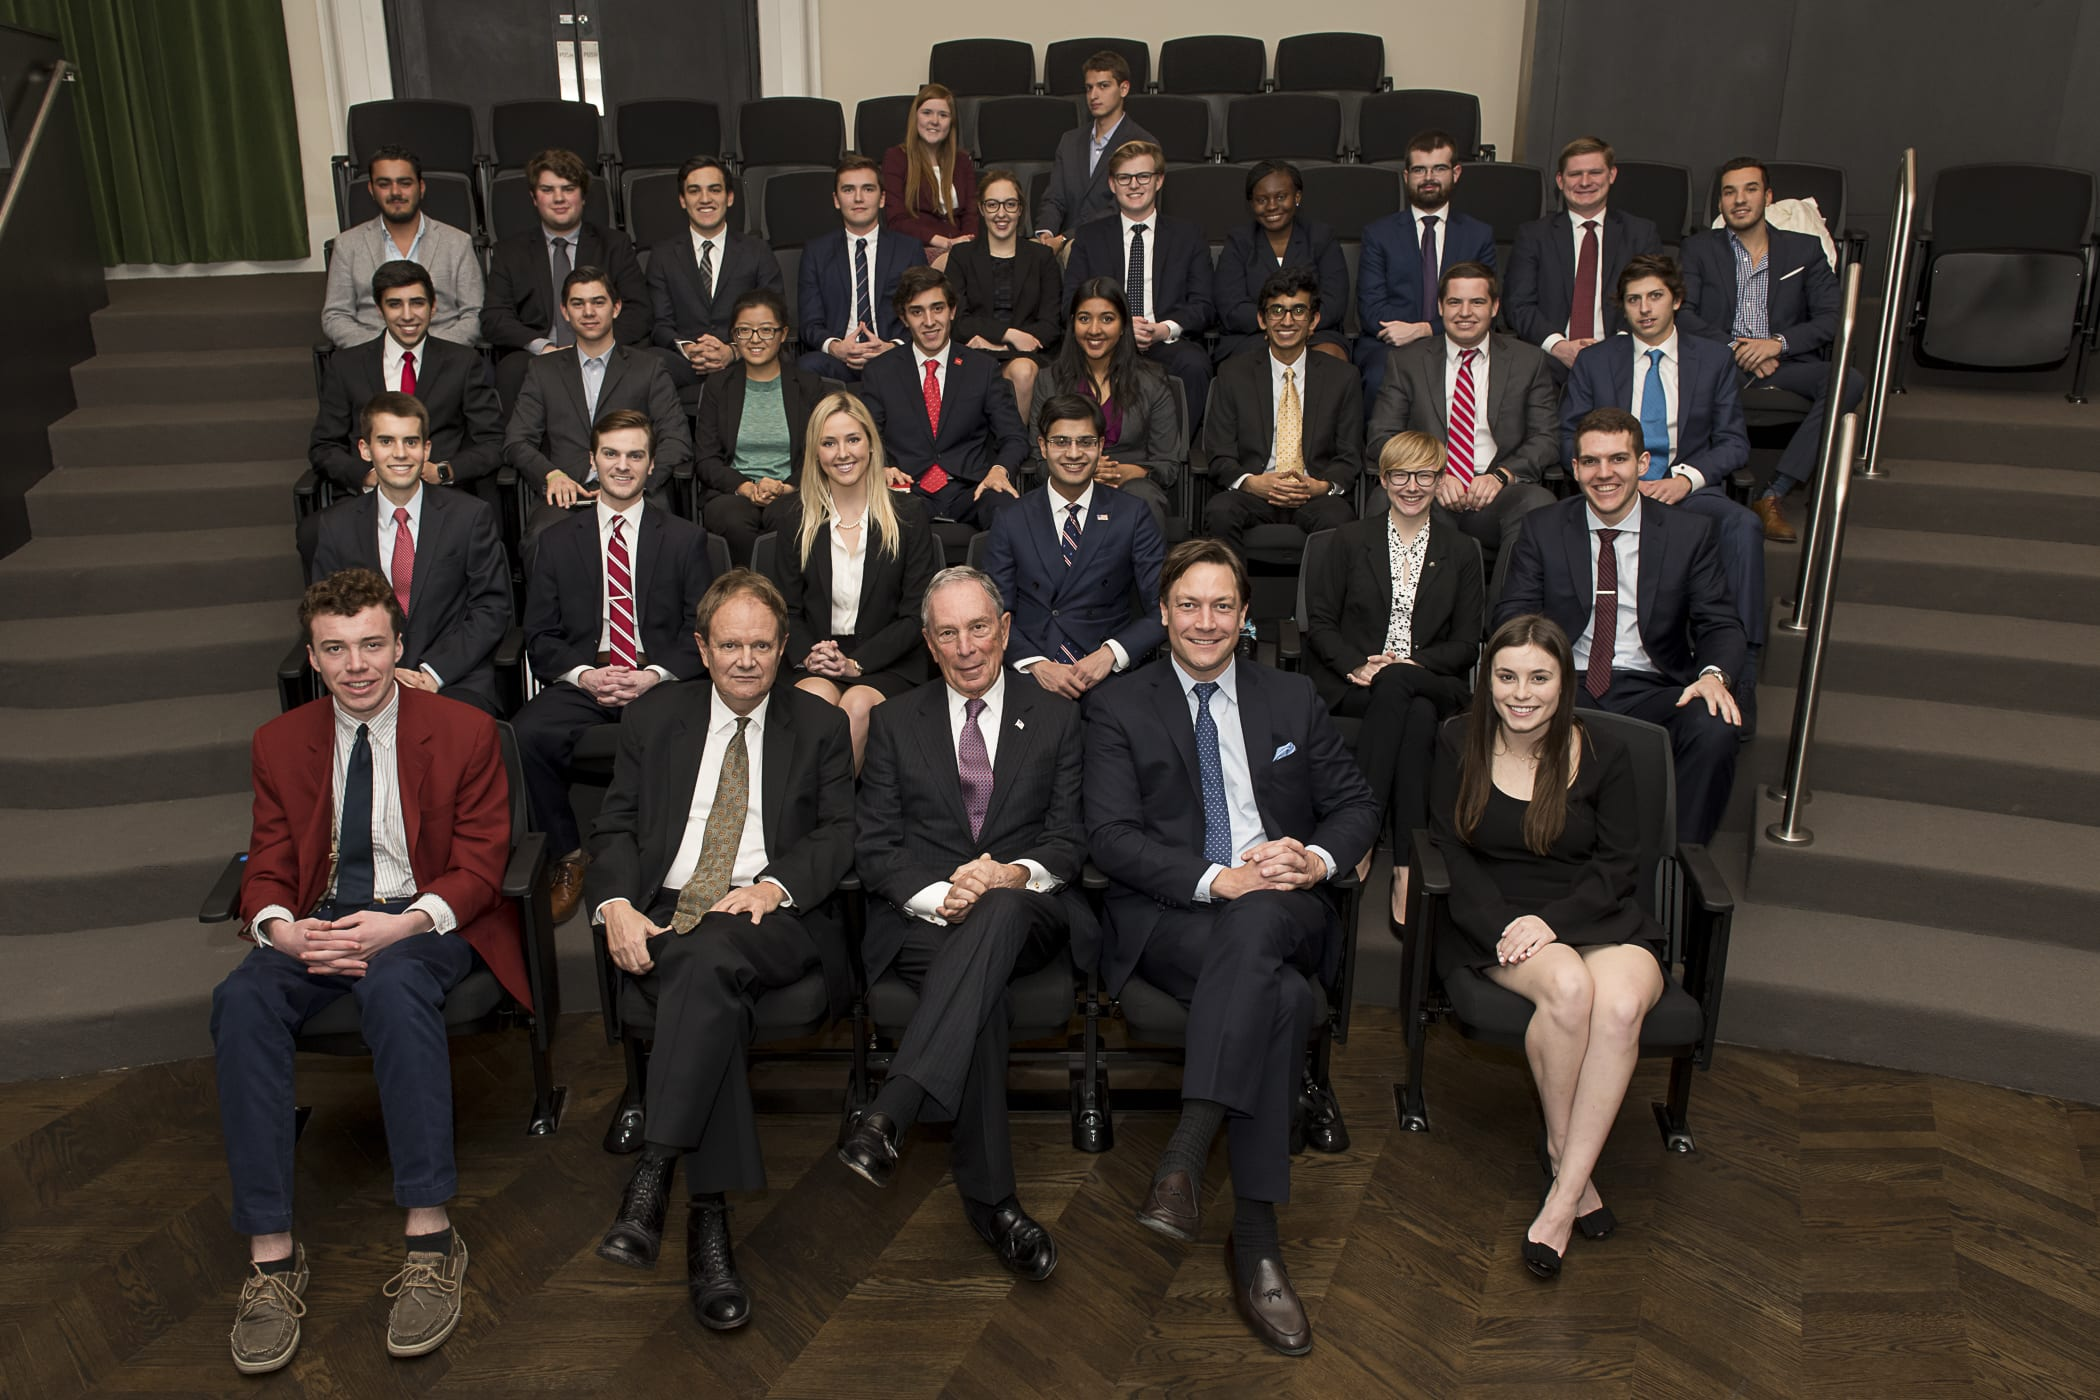 Michael Bloomberg with SMU students